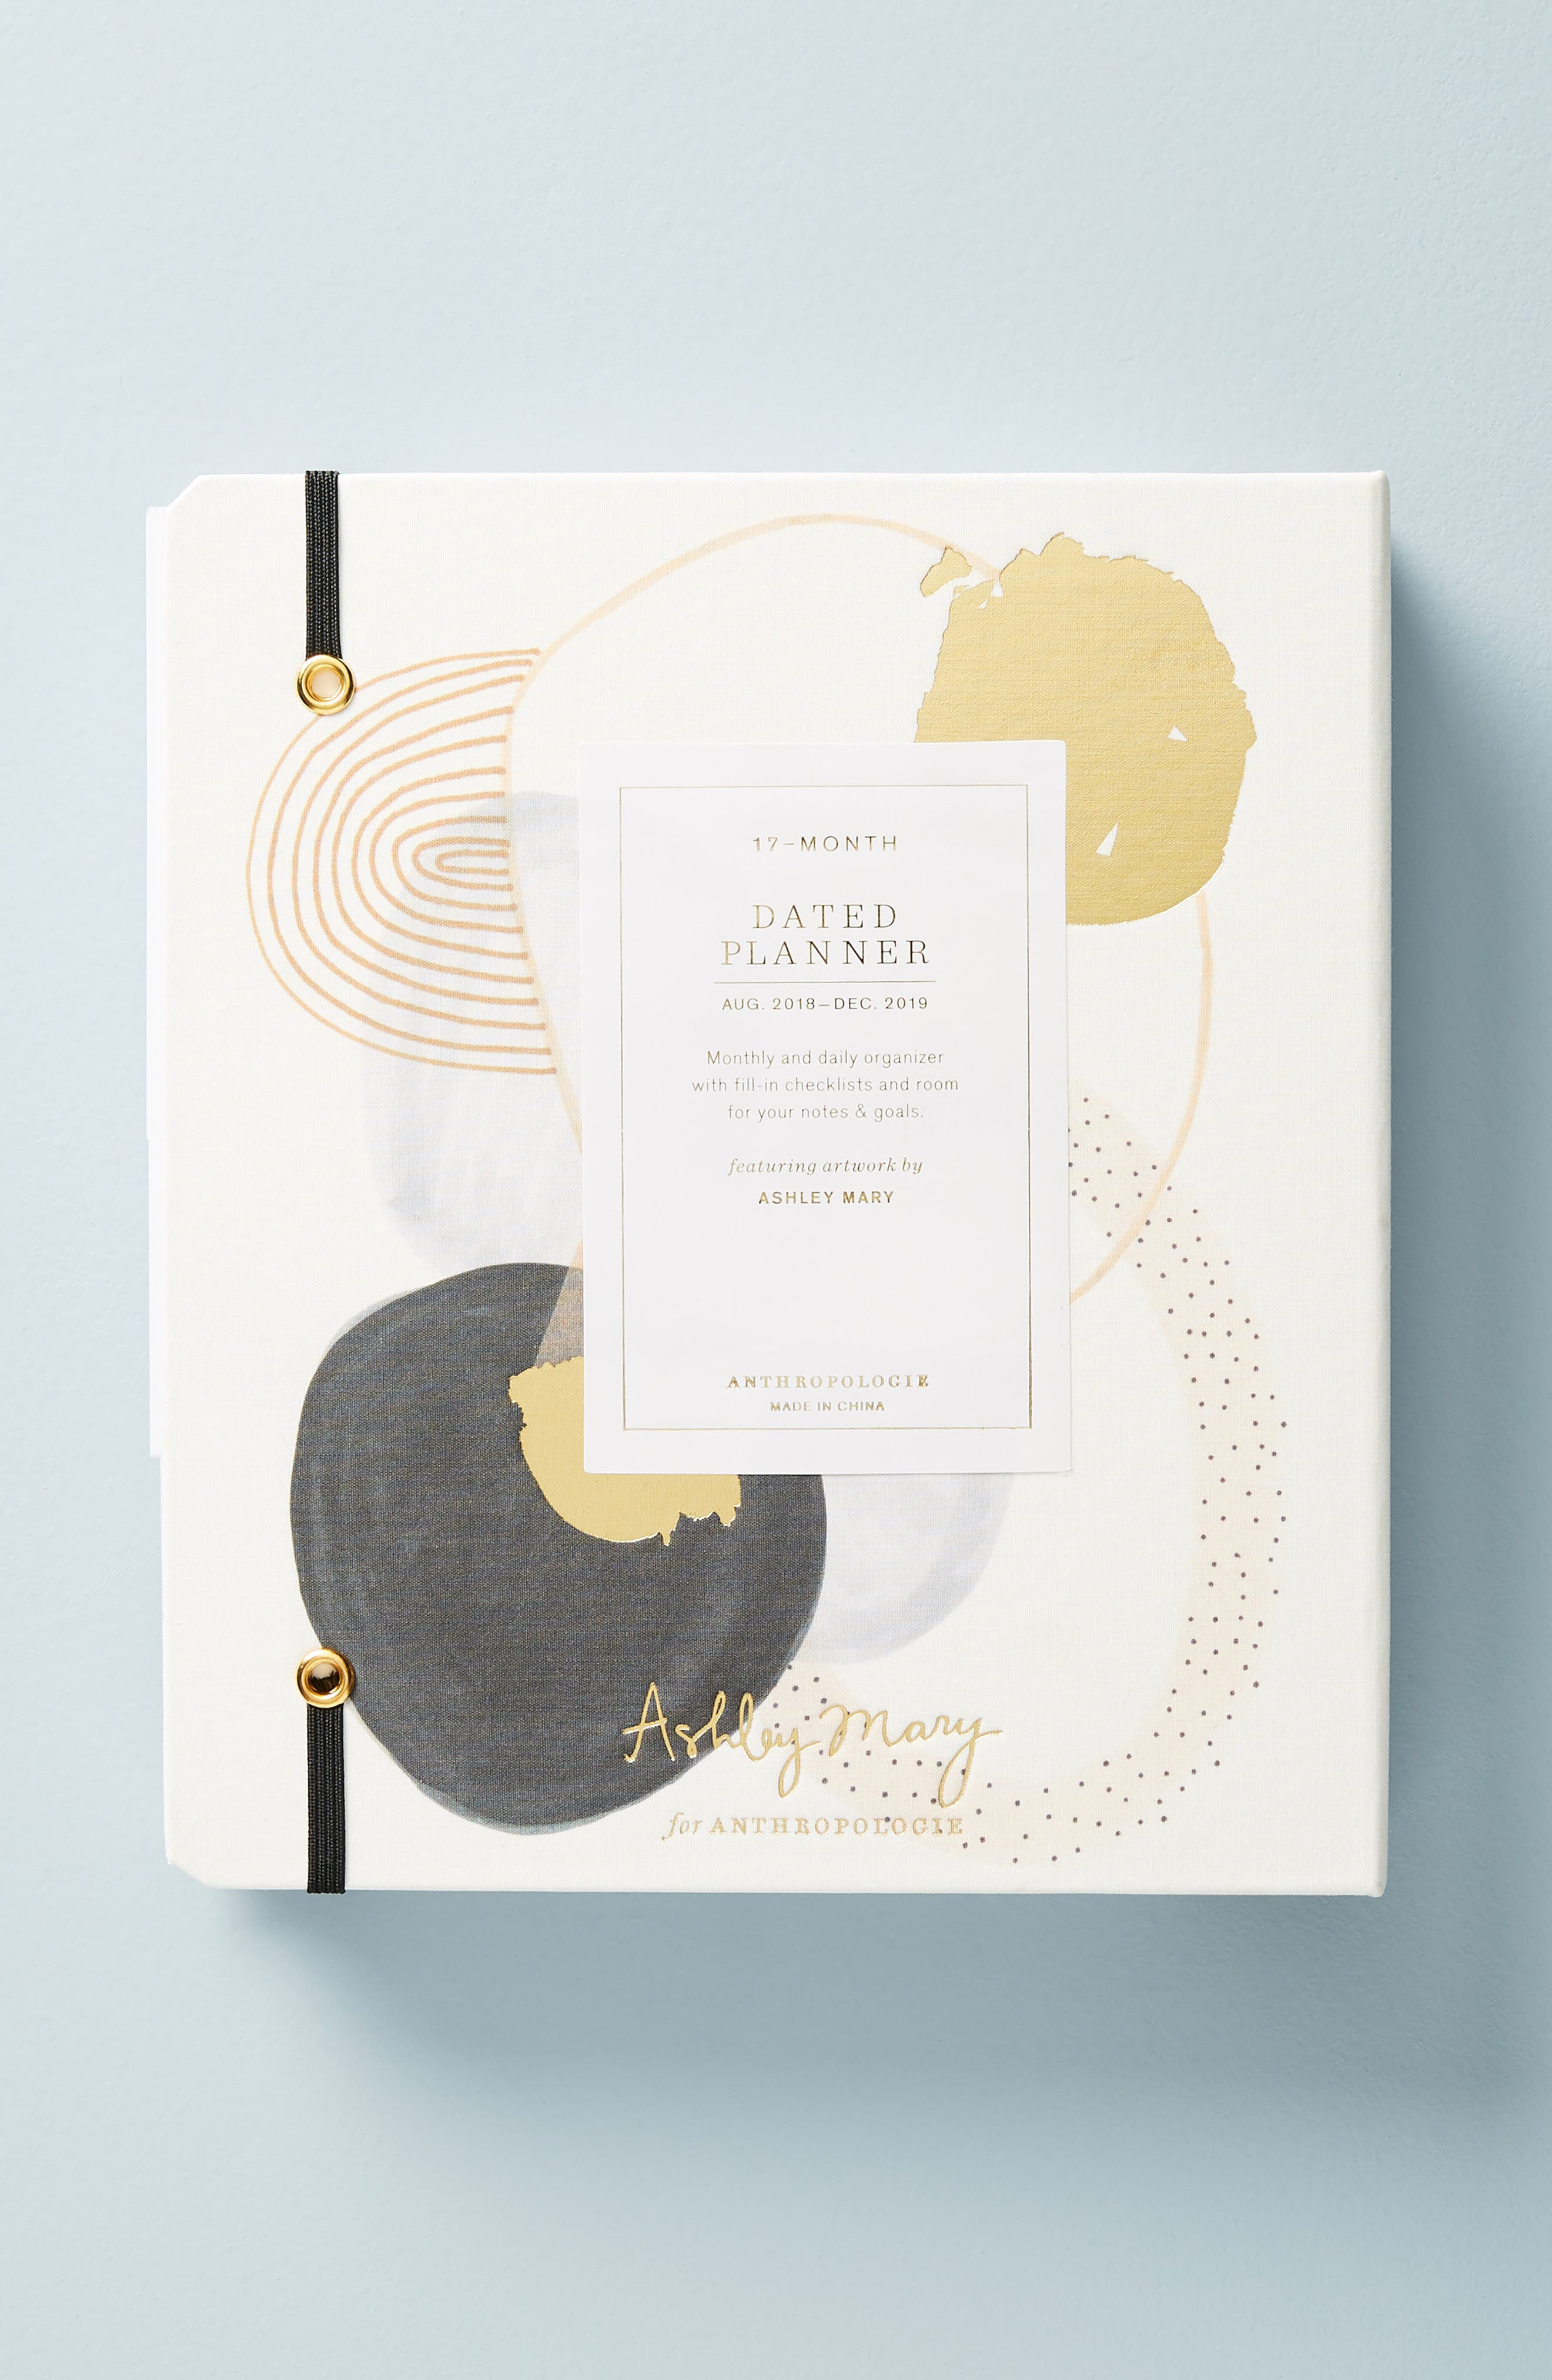 Ashley Mary 17-Month Hardcover Planner,                             Alternate thumbnail 4, color,                             111